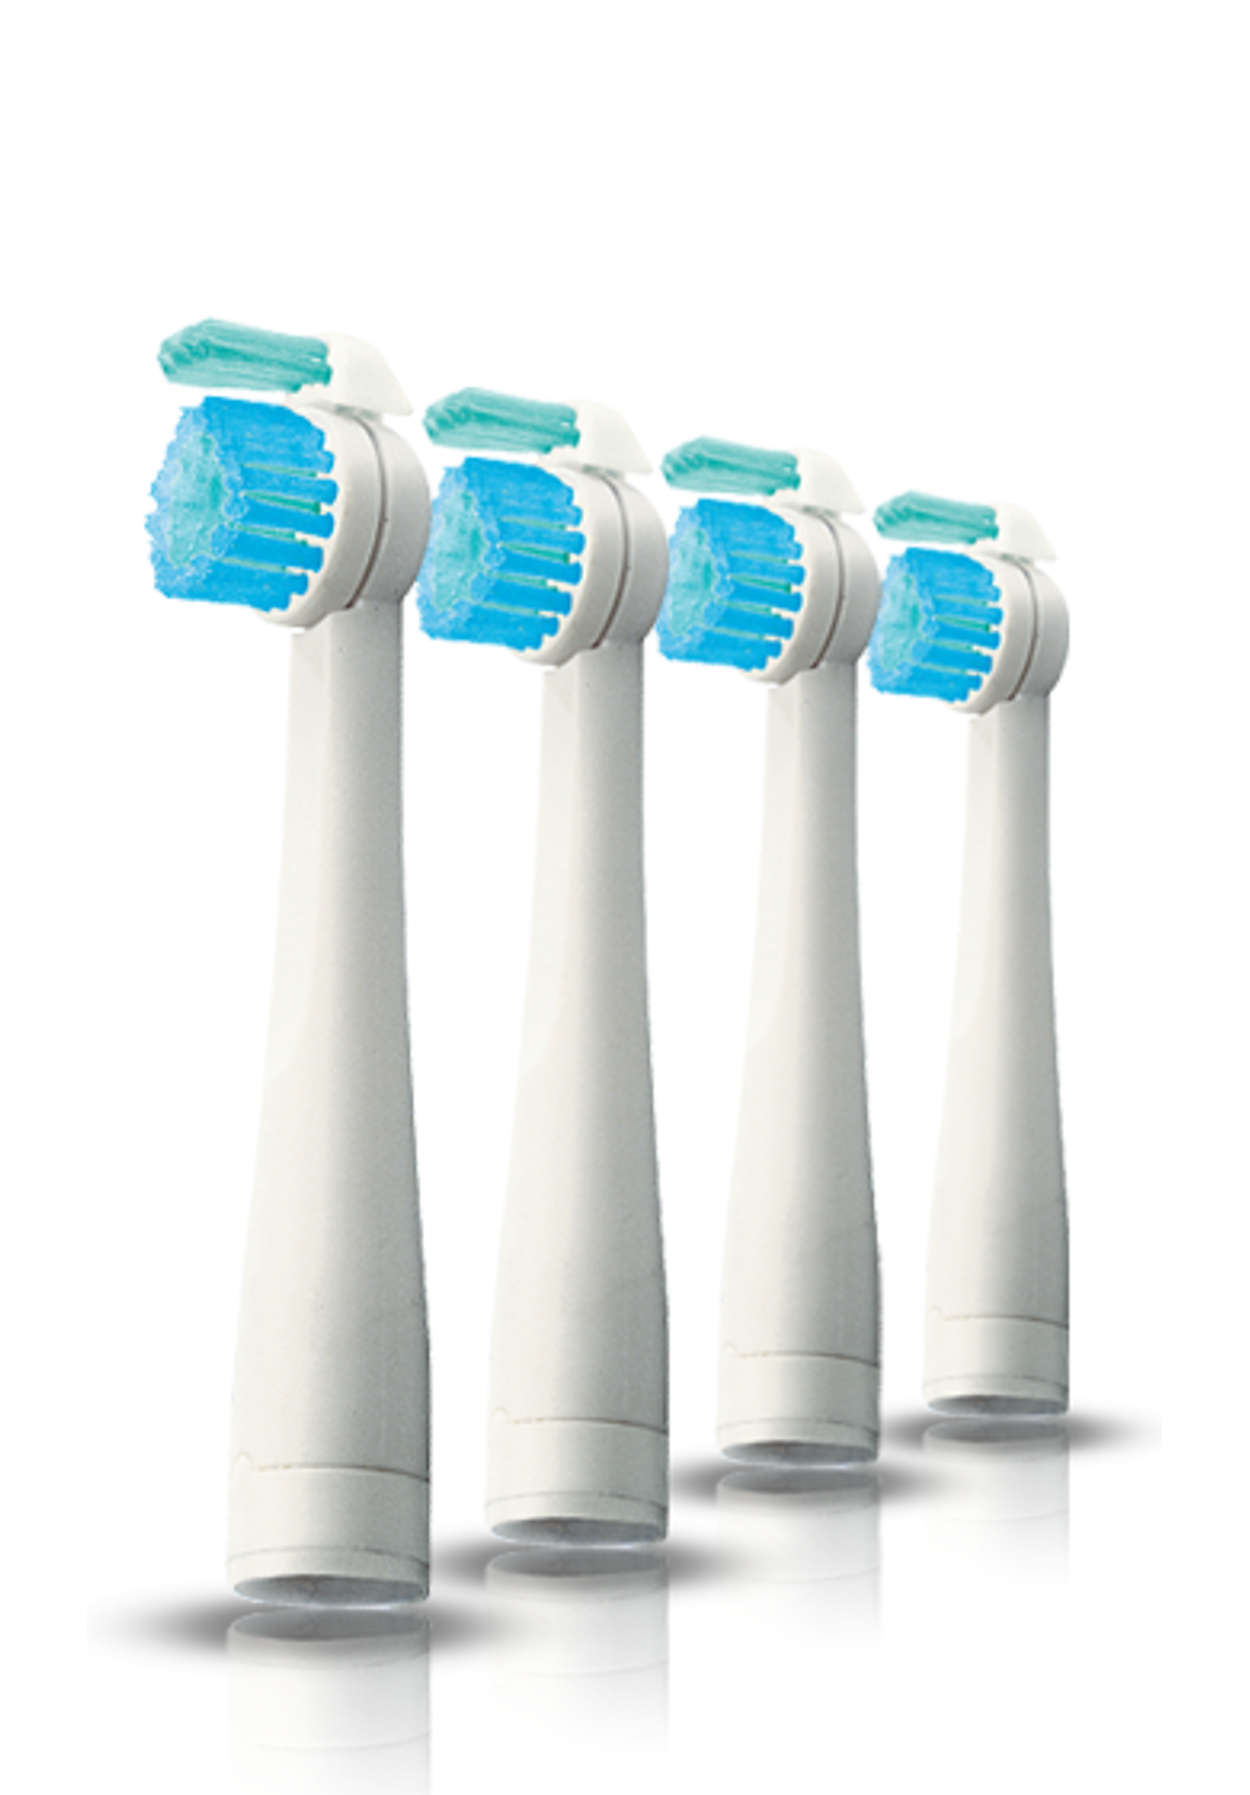 Sensiflex replacement brushes